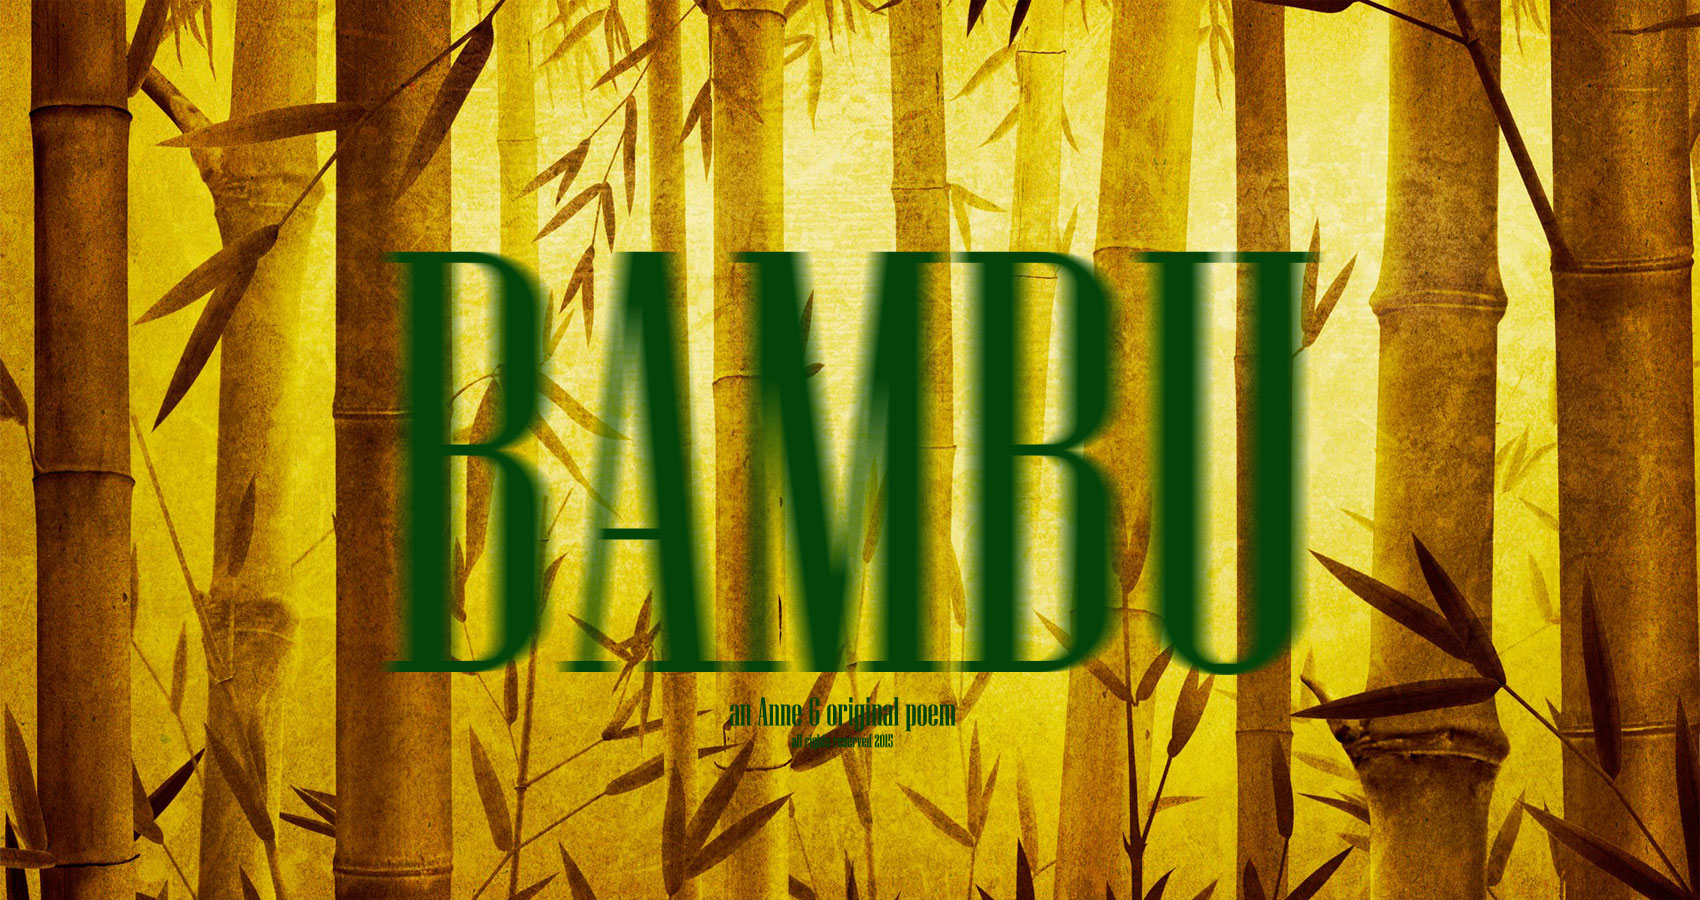 spillwords.com Bambu An Anne G Original Poem